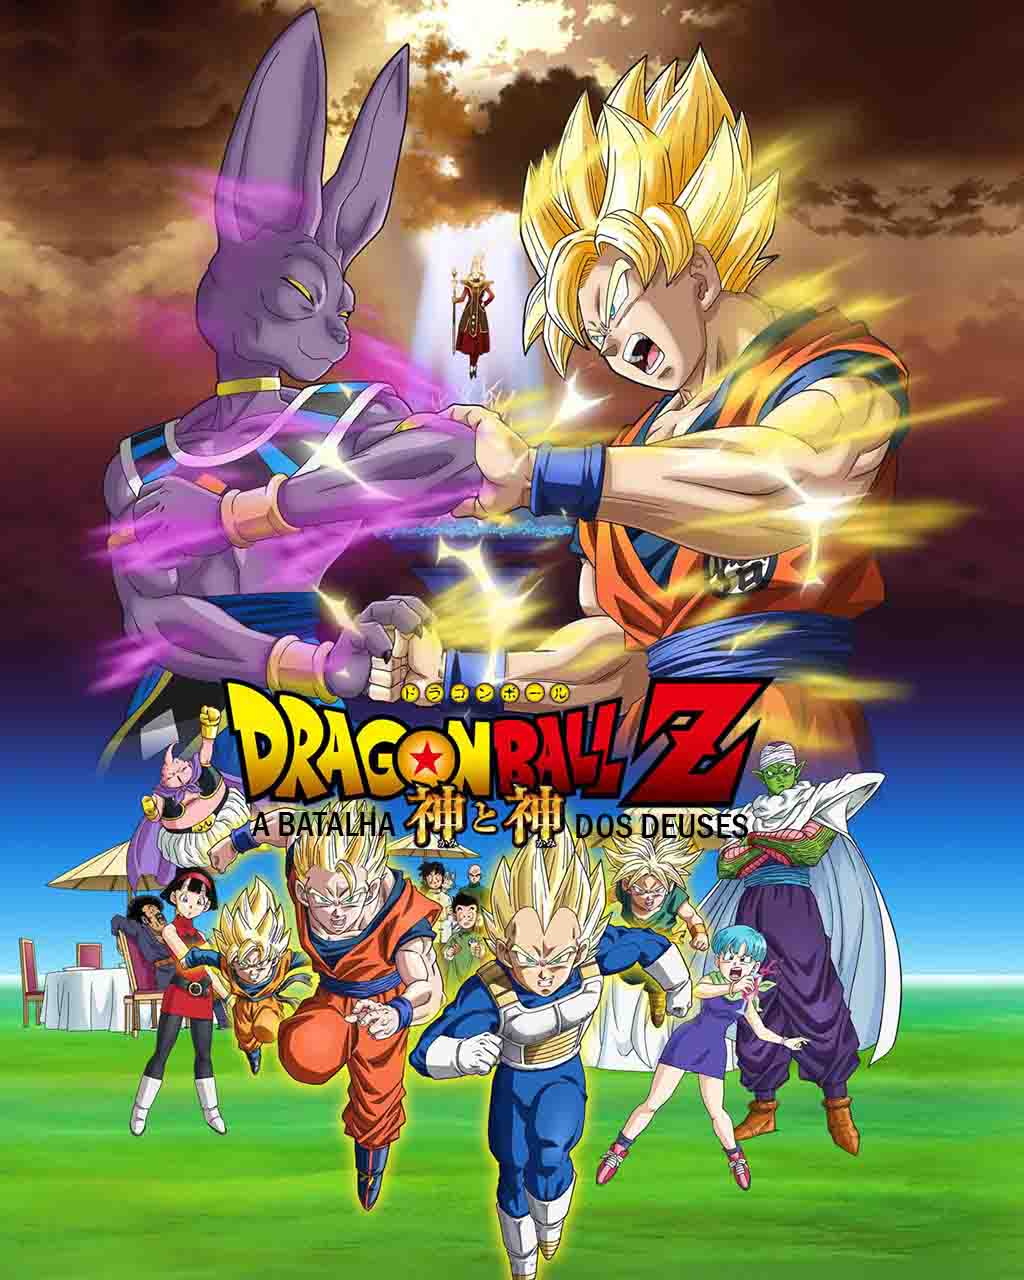 Dragon Ball Z: A Batalha dos Deuses Torrent – BluRay 1080p Dual Áudio